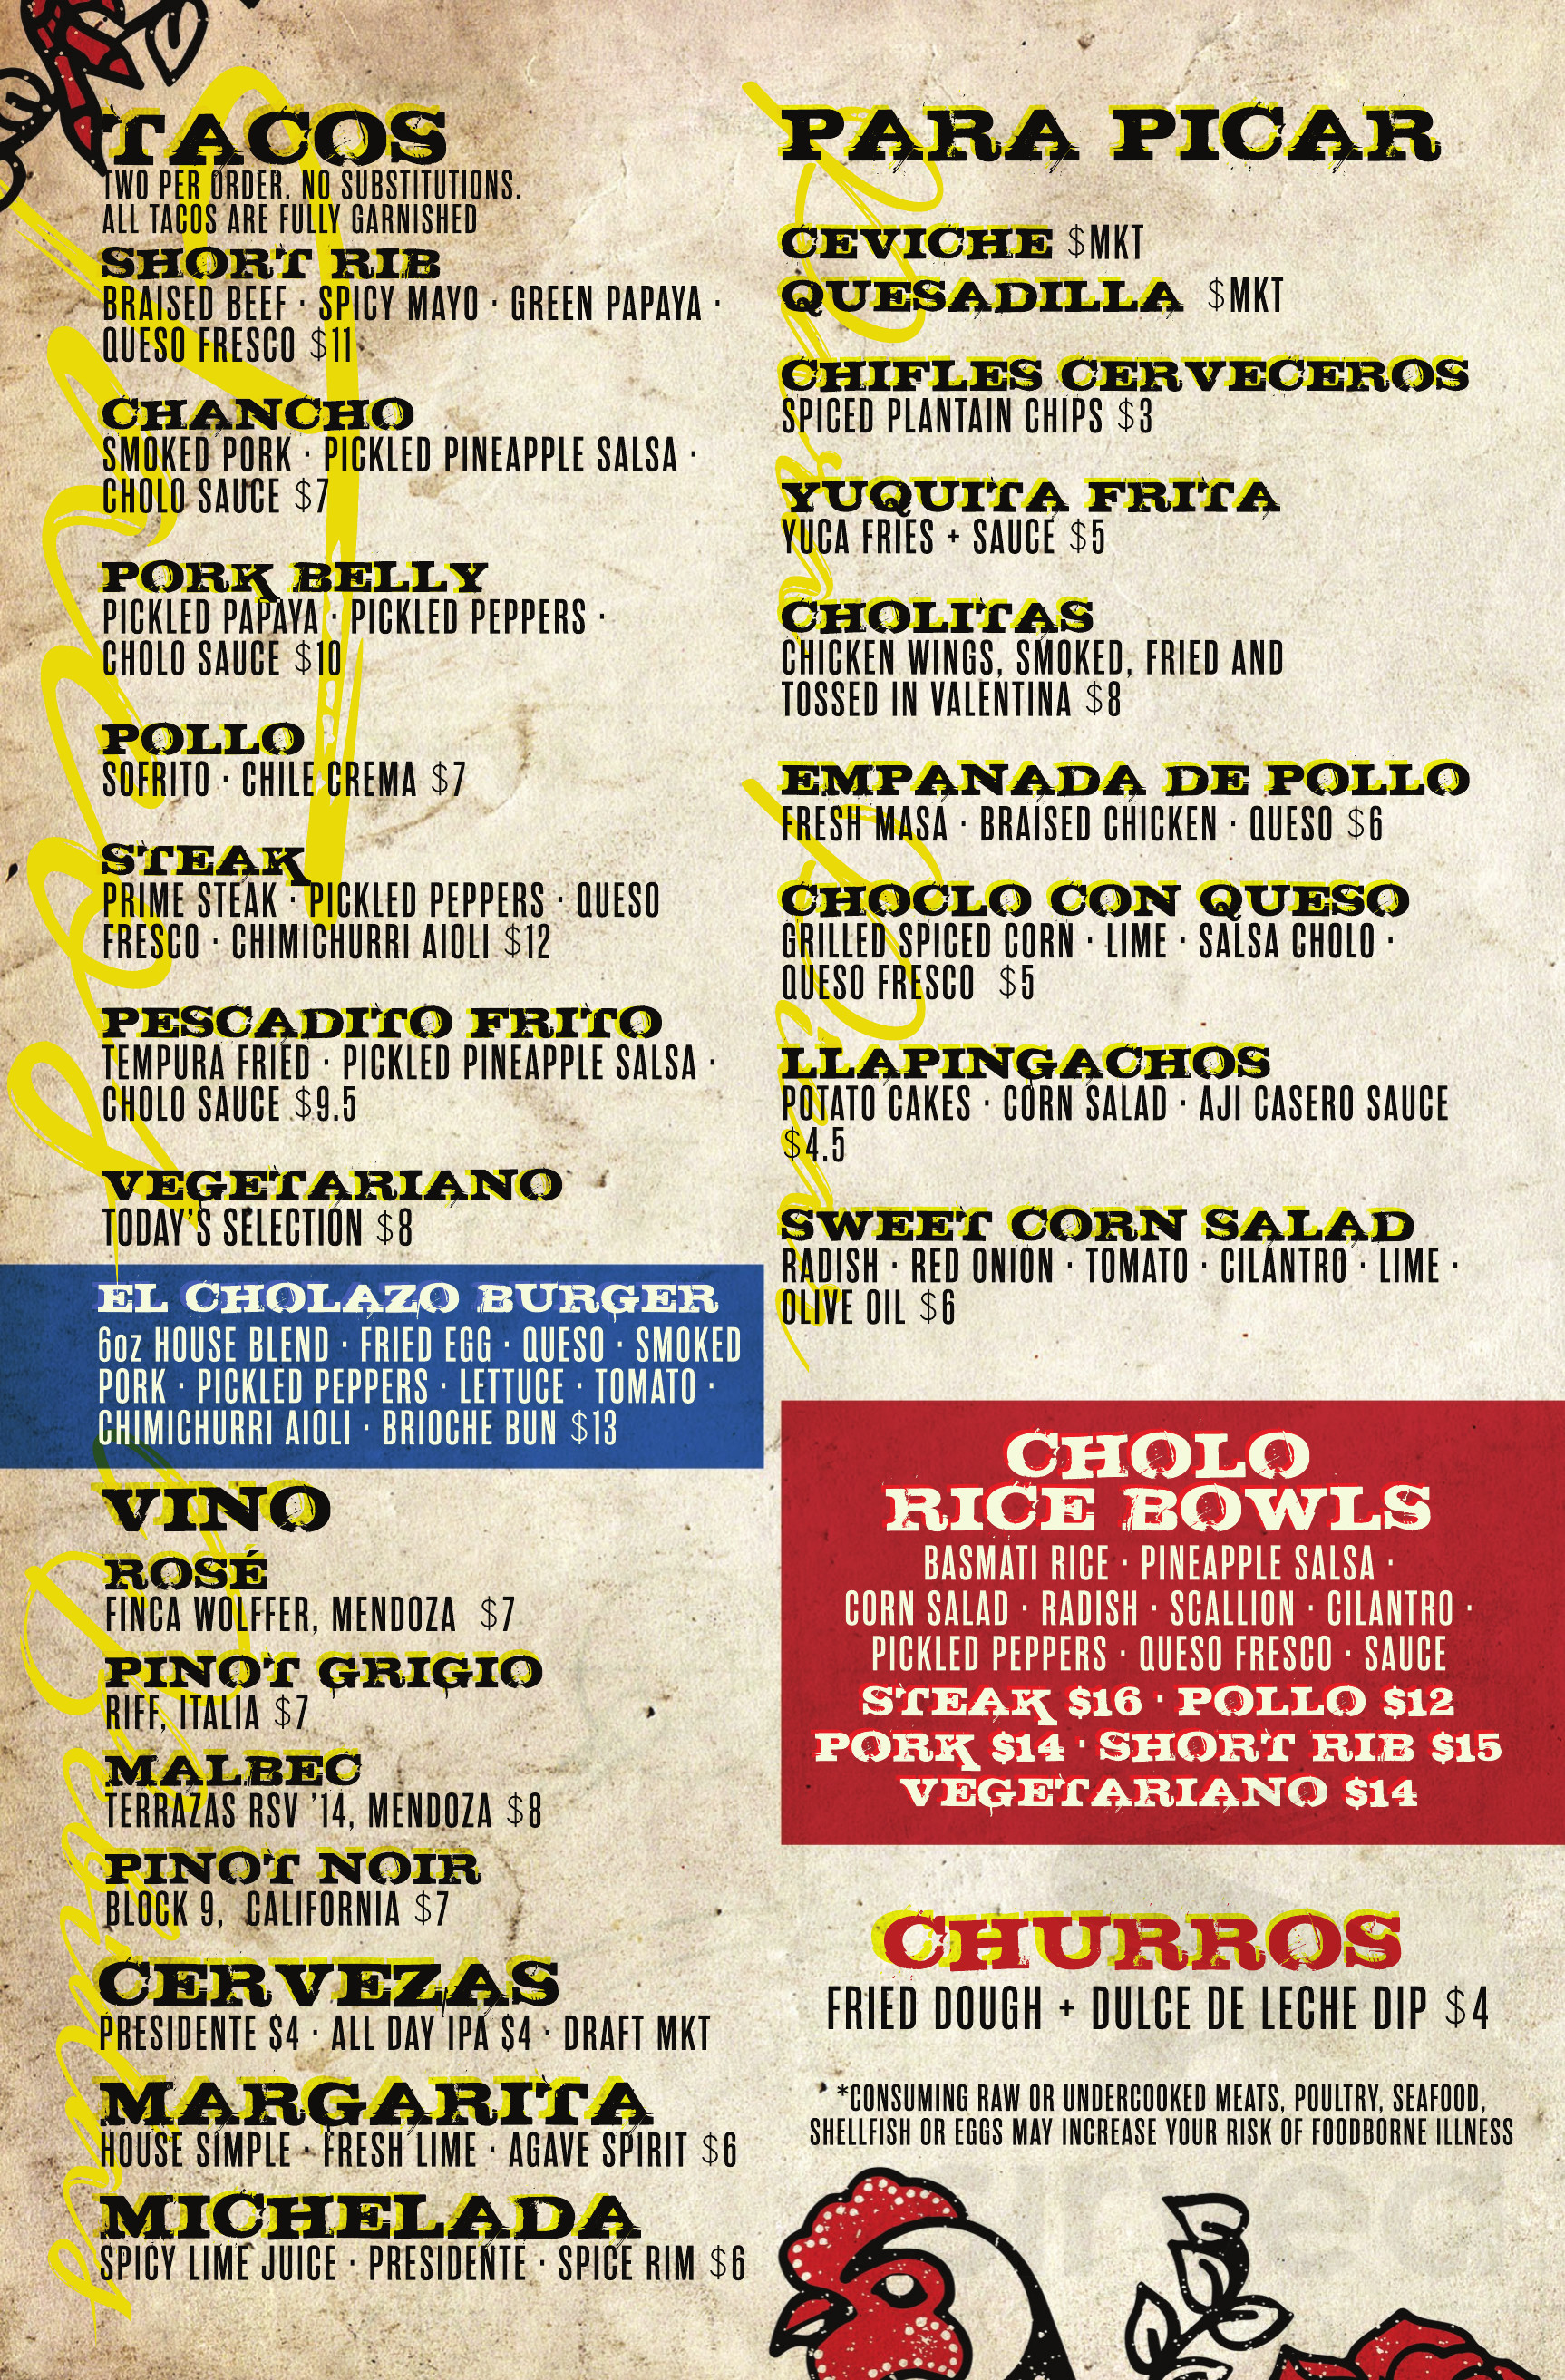 Menu For Cholo Soy Cocina In West Palm Beach Florida